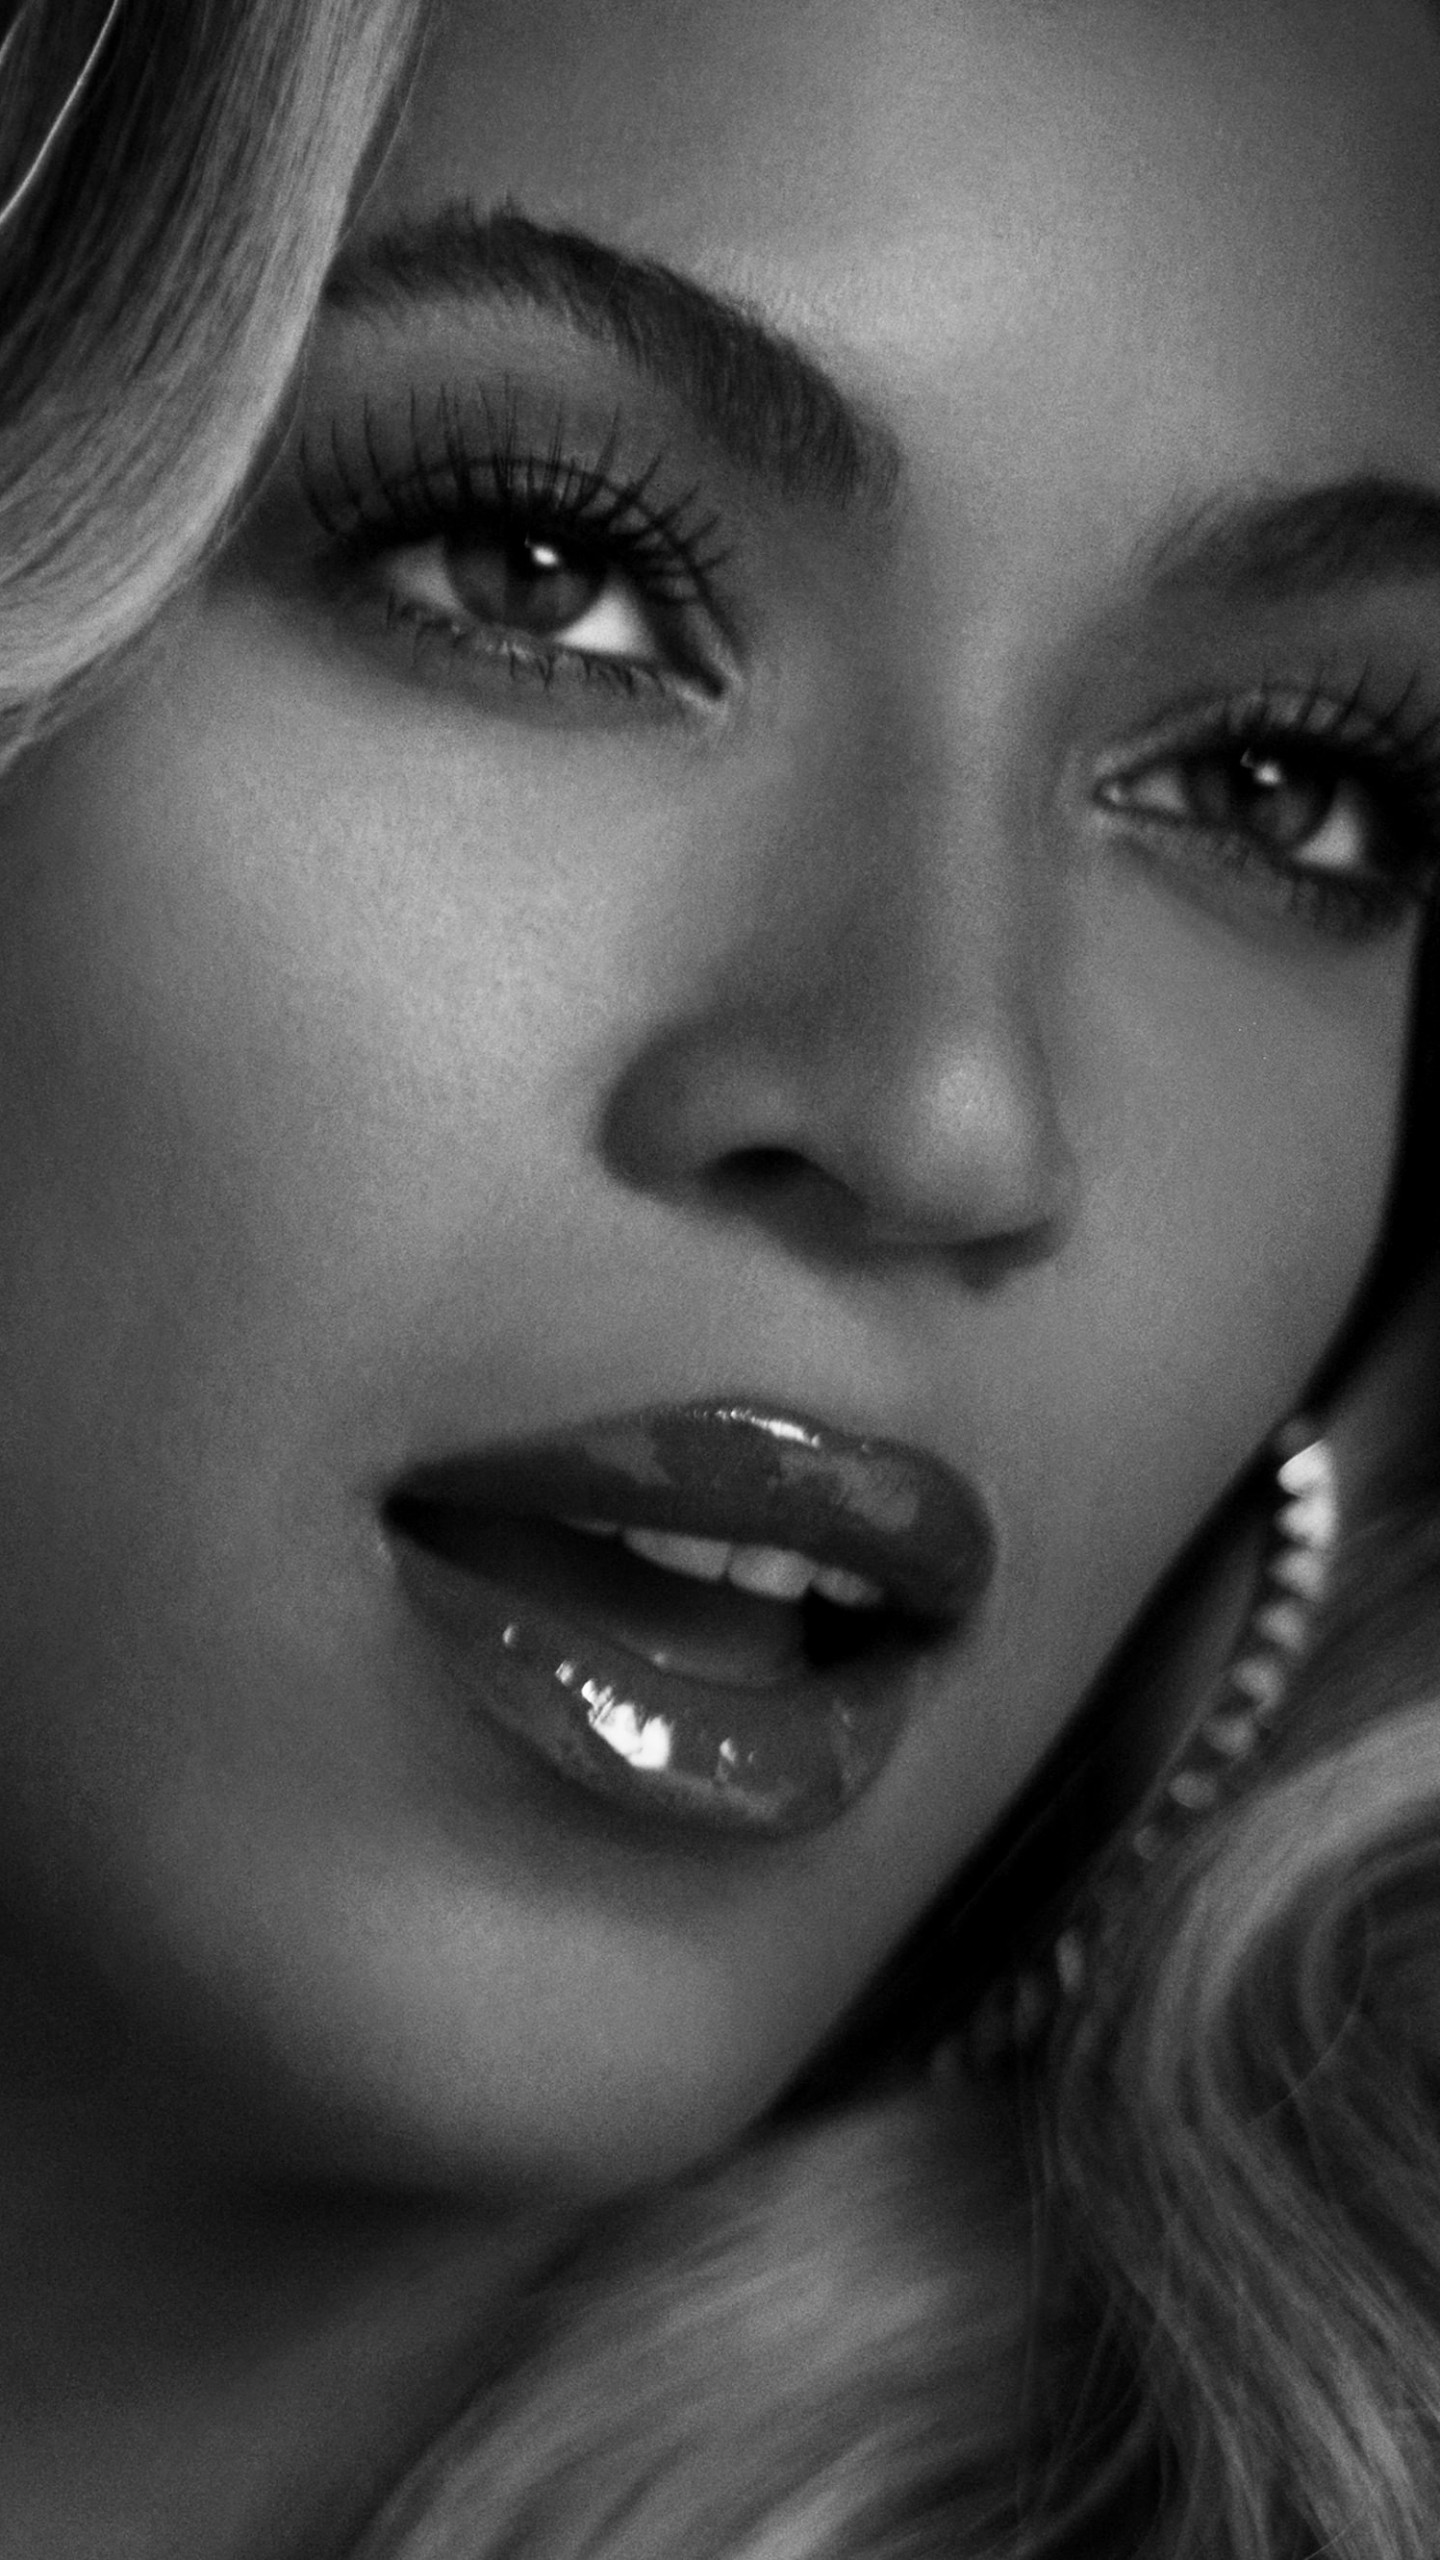 Beyonce in Black & White Wallpaper for SAMSUNG Galaxy Note 4